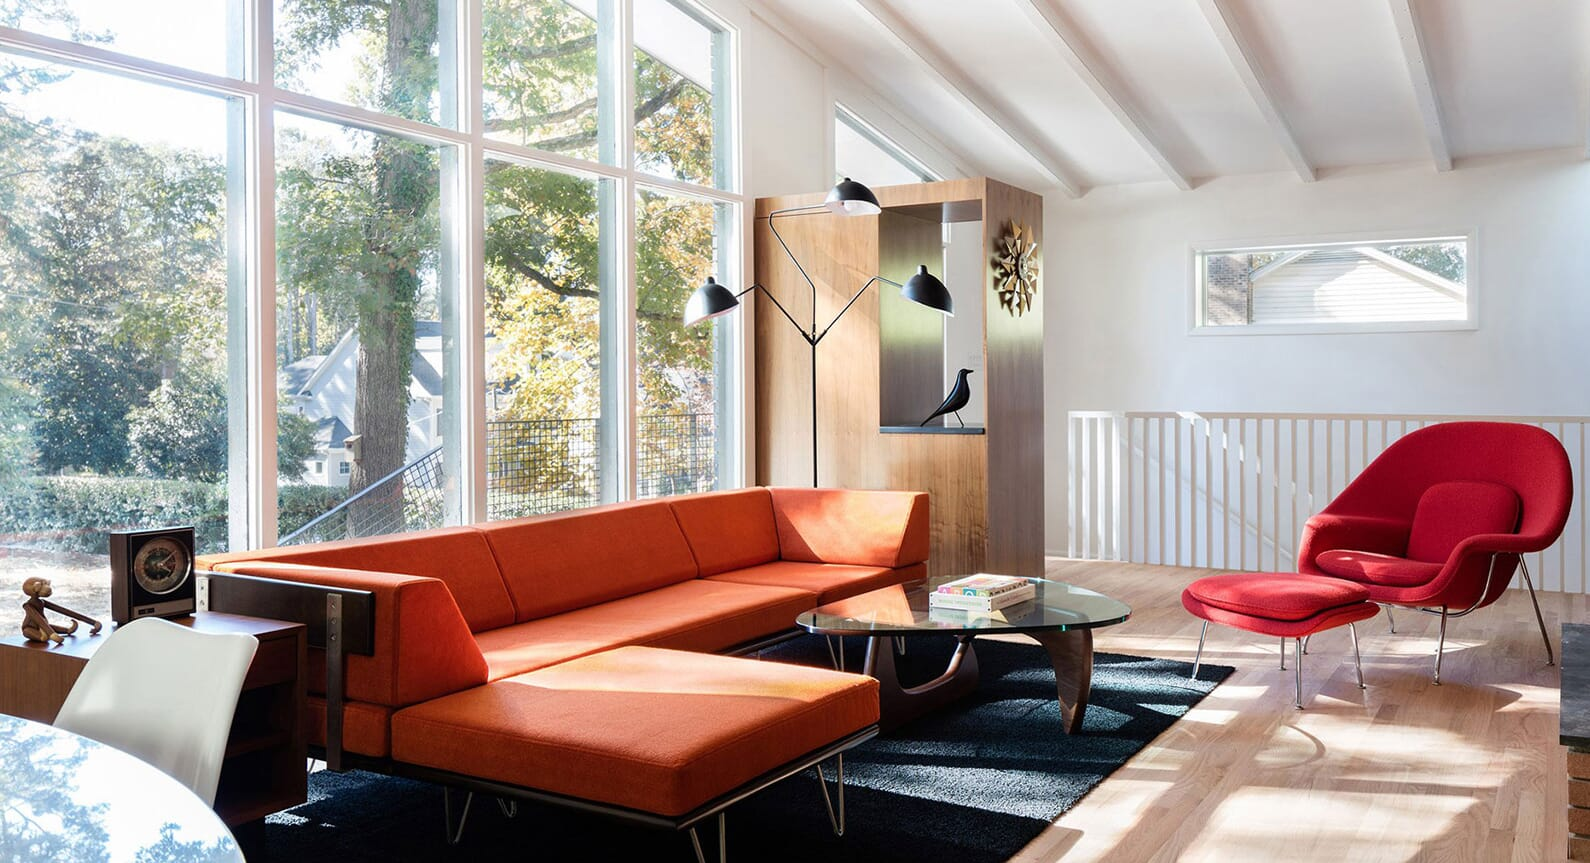 Take A Look Inside The Spectacular Ocotea House Renovation from In Situ Studio